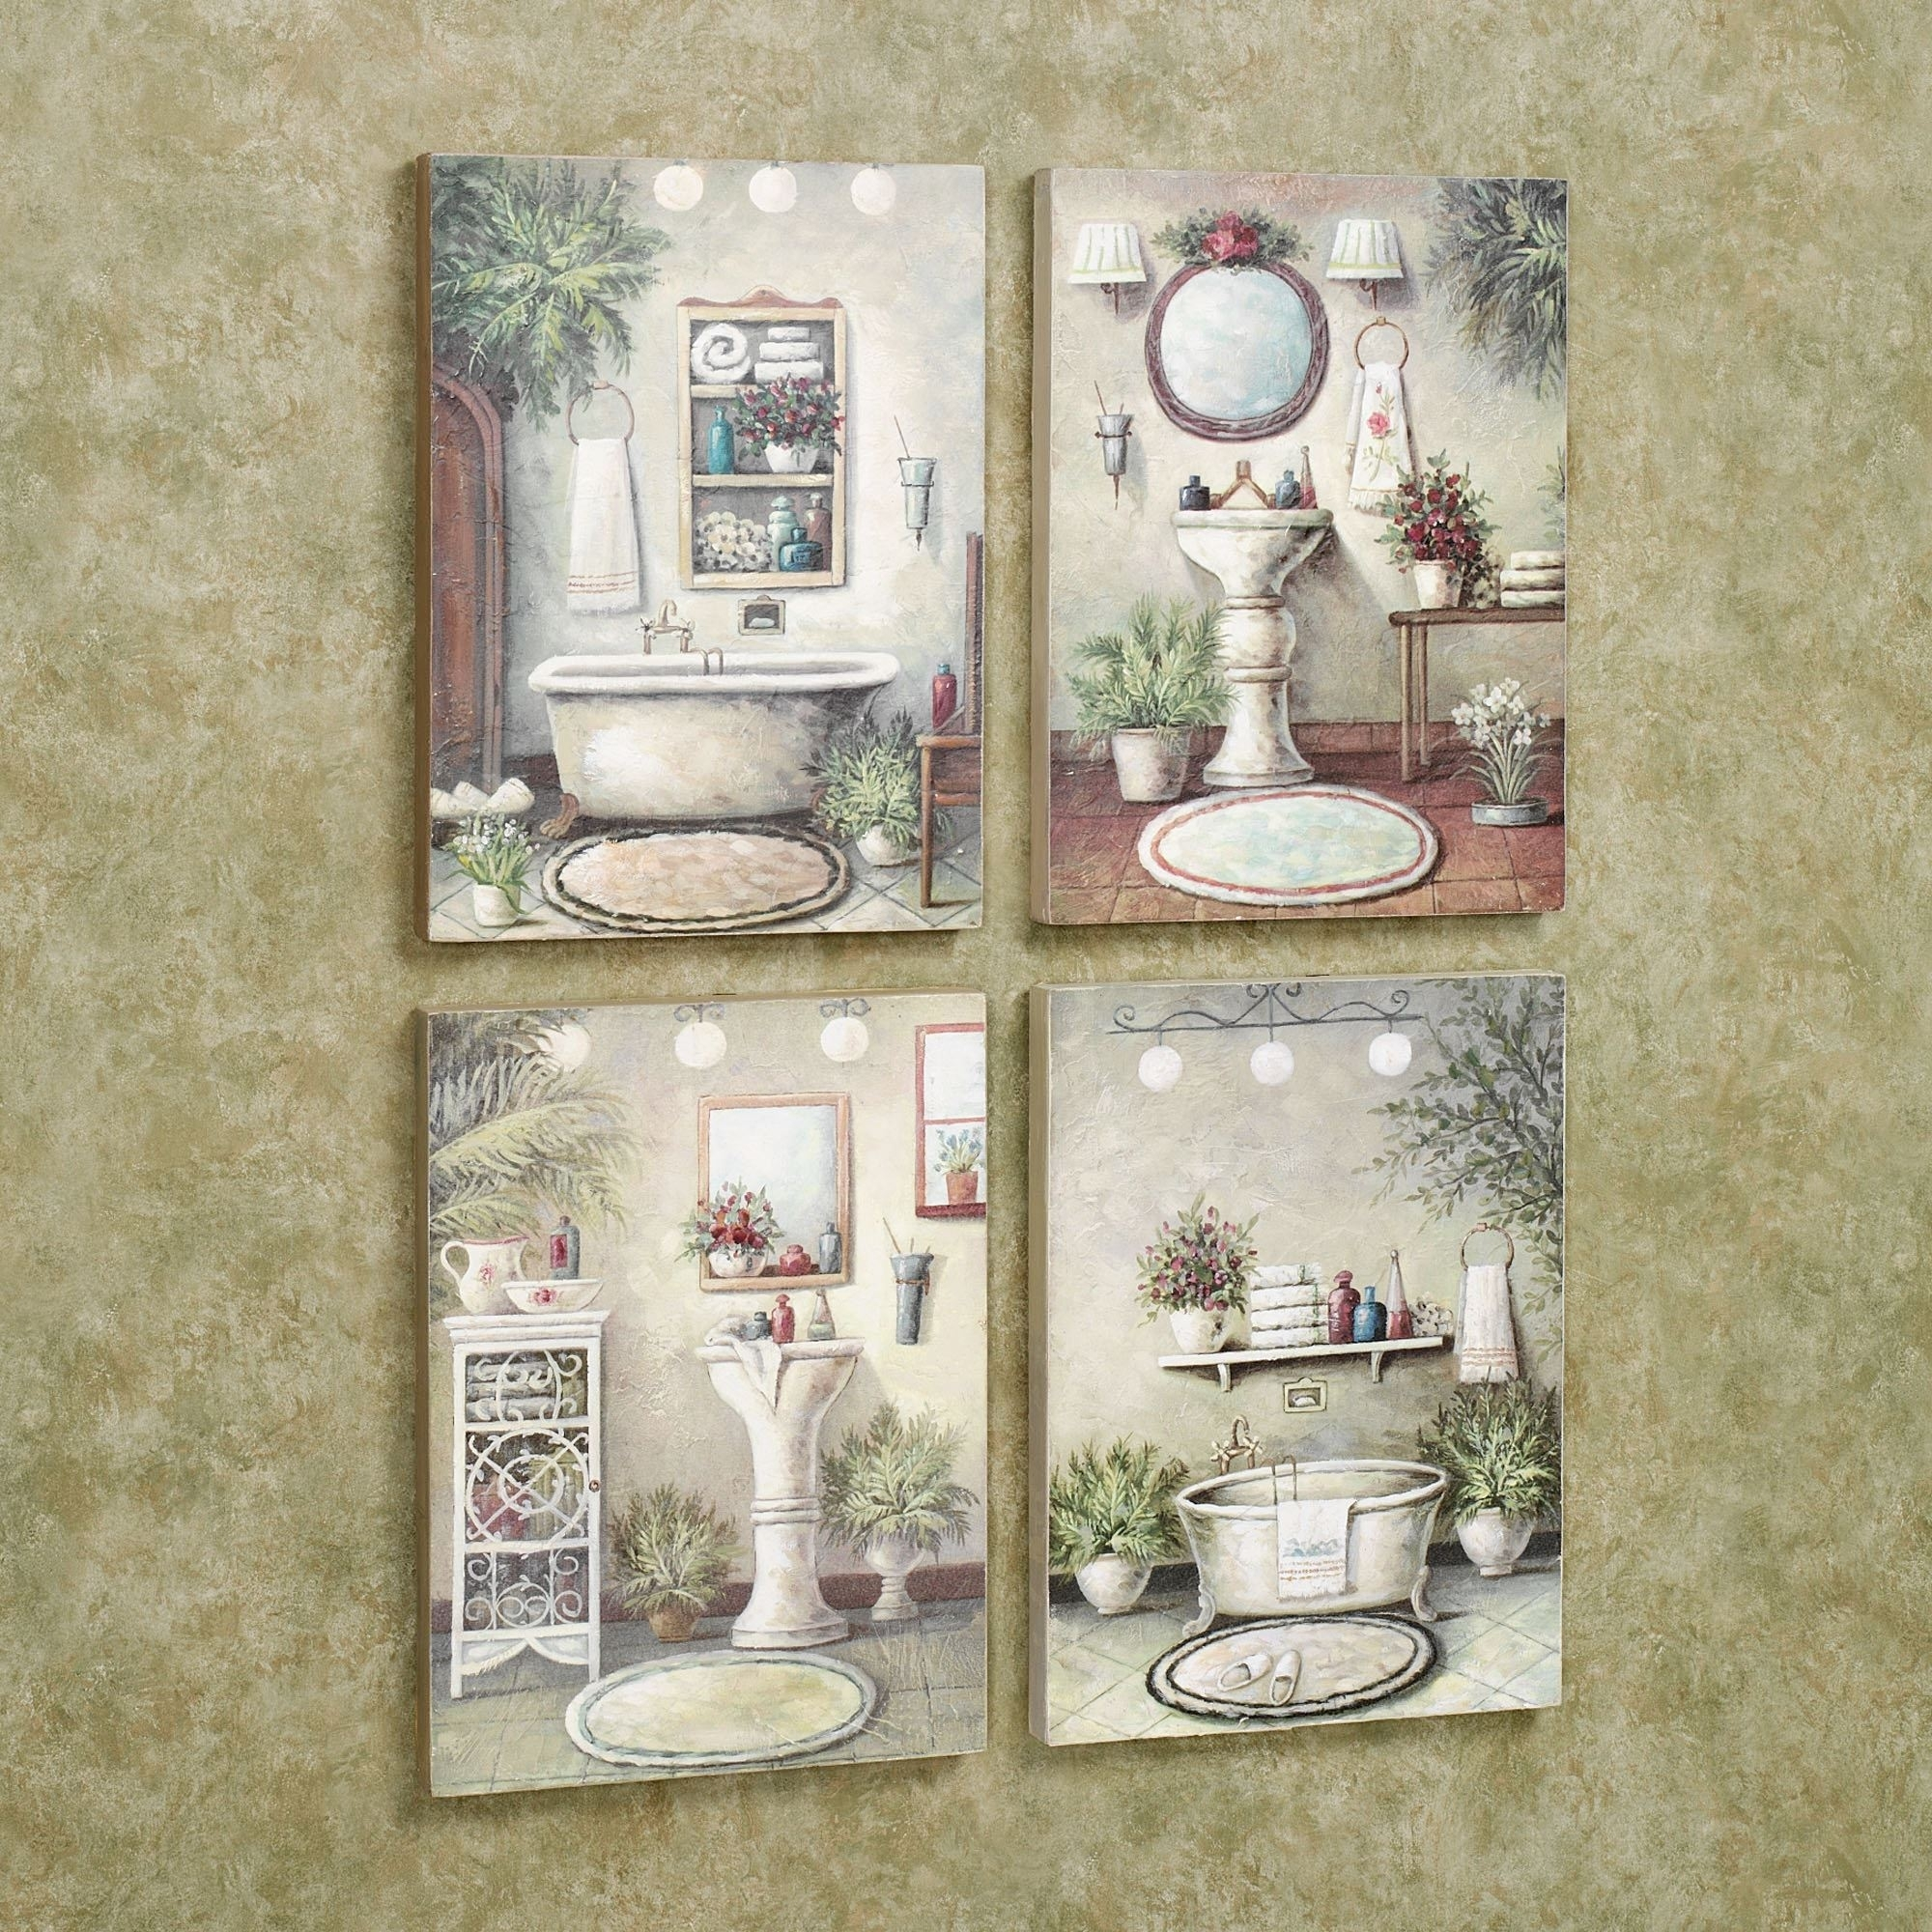 Bathroom Bliss Wooden Wall Art Plaque Set For Most Popular Wall Art For Bathroom (View 3 of 20)